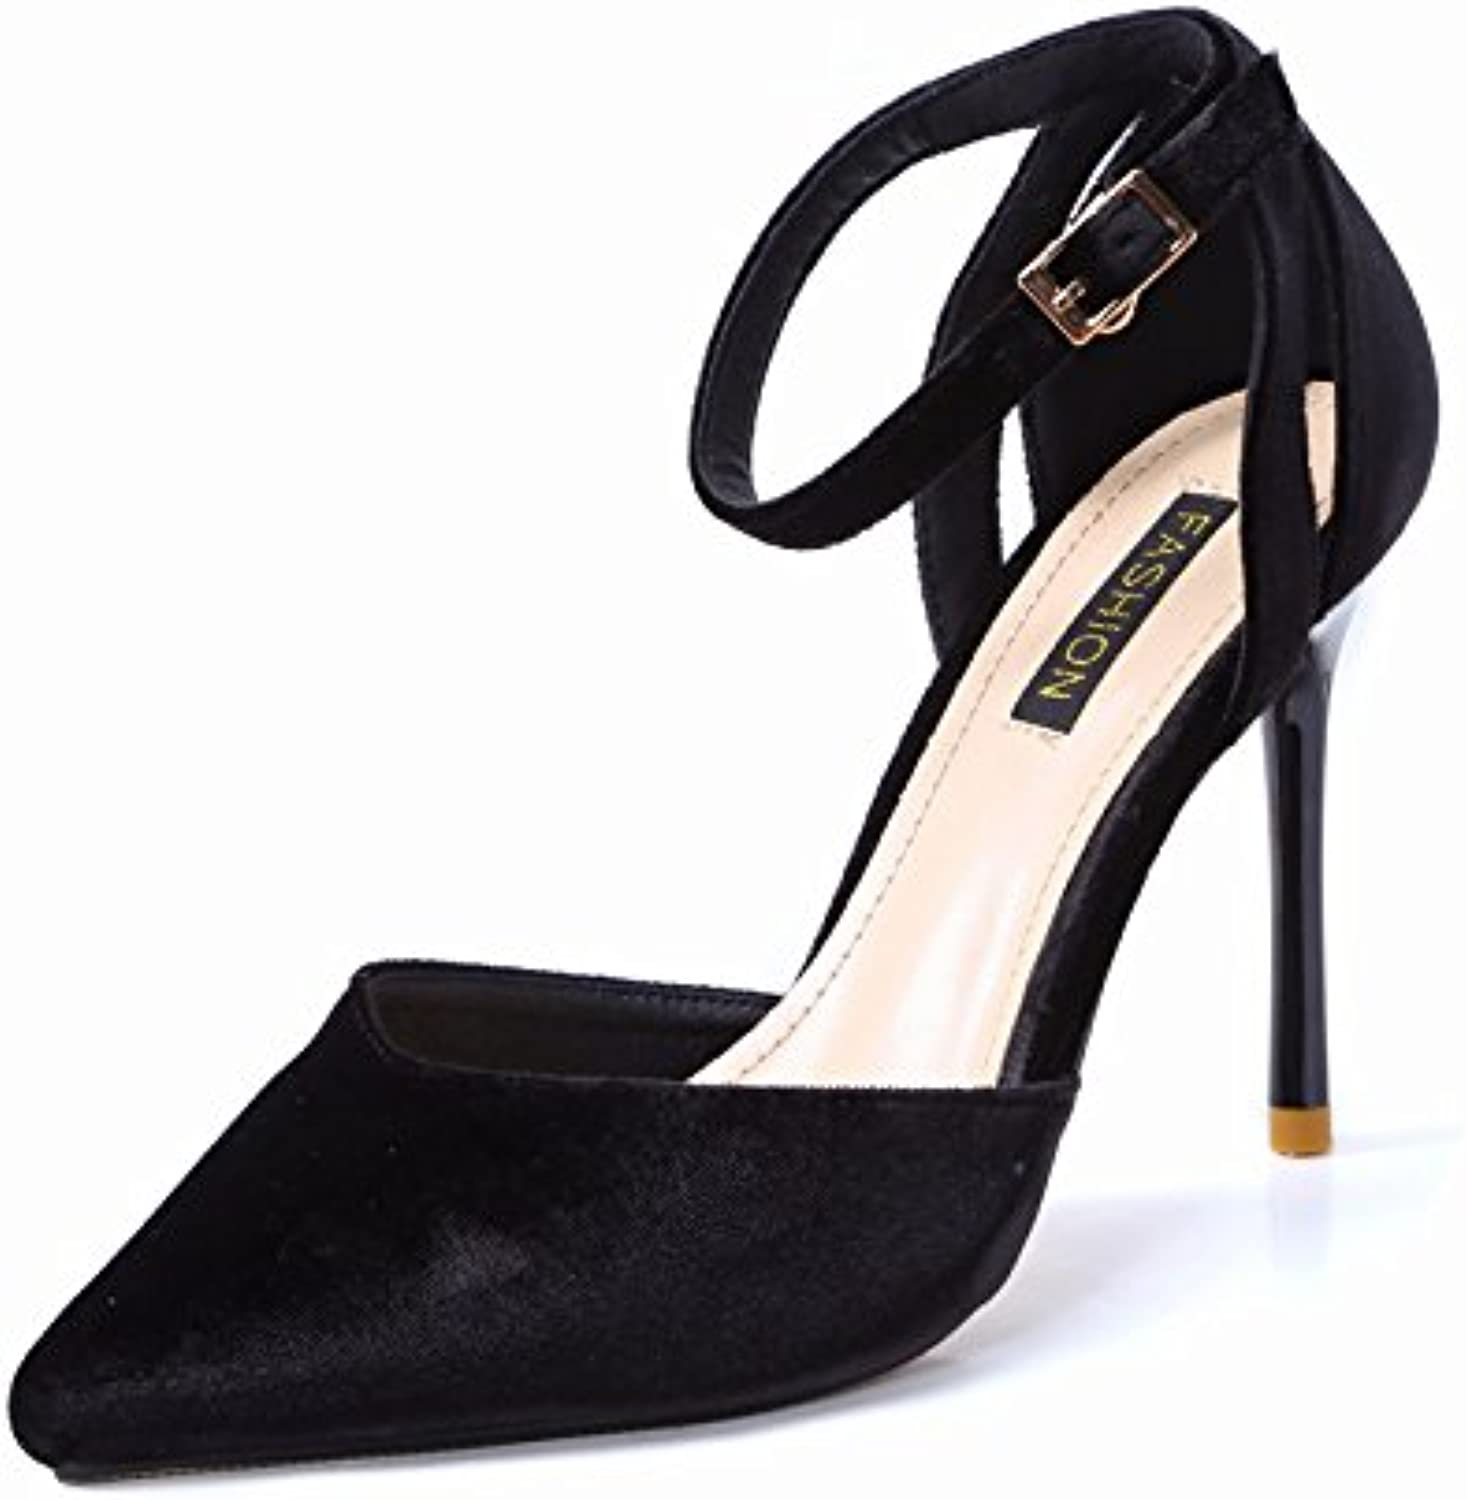 LGK&FA Elegant Elegant Apricot Buckles Hollow Pointed Pointed High Heeled Shoes Simple Suede Fine Shoes Ladies...